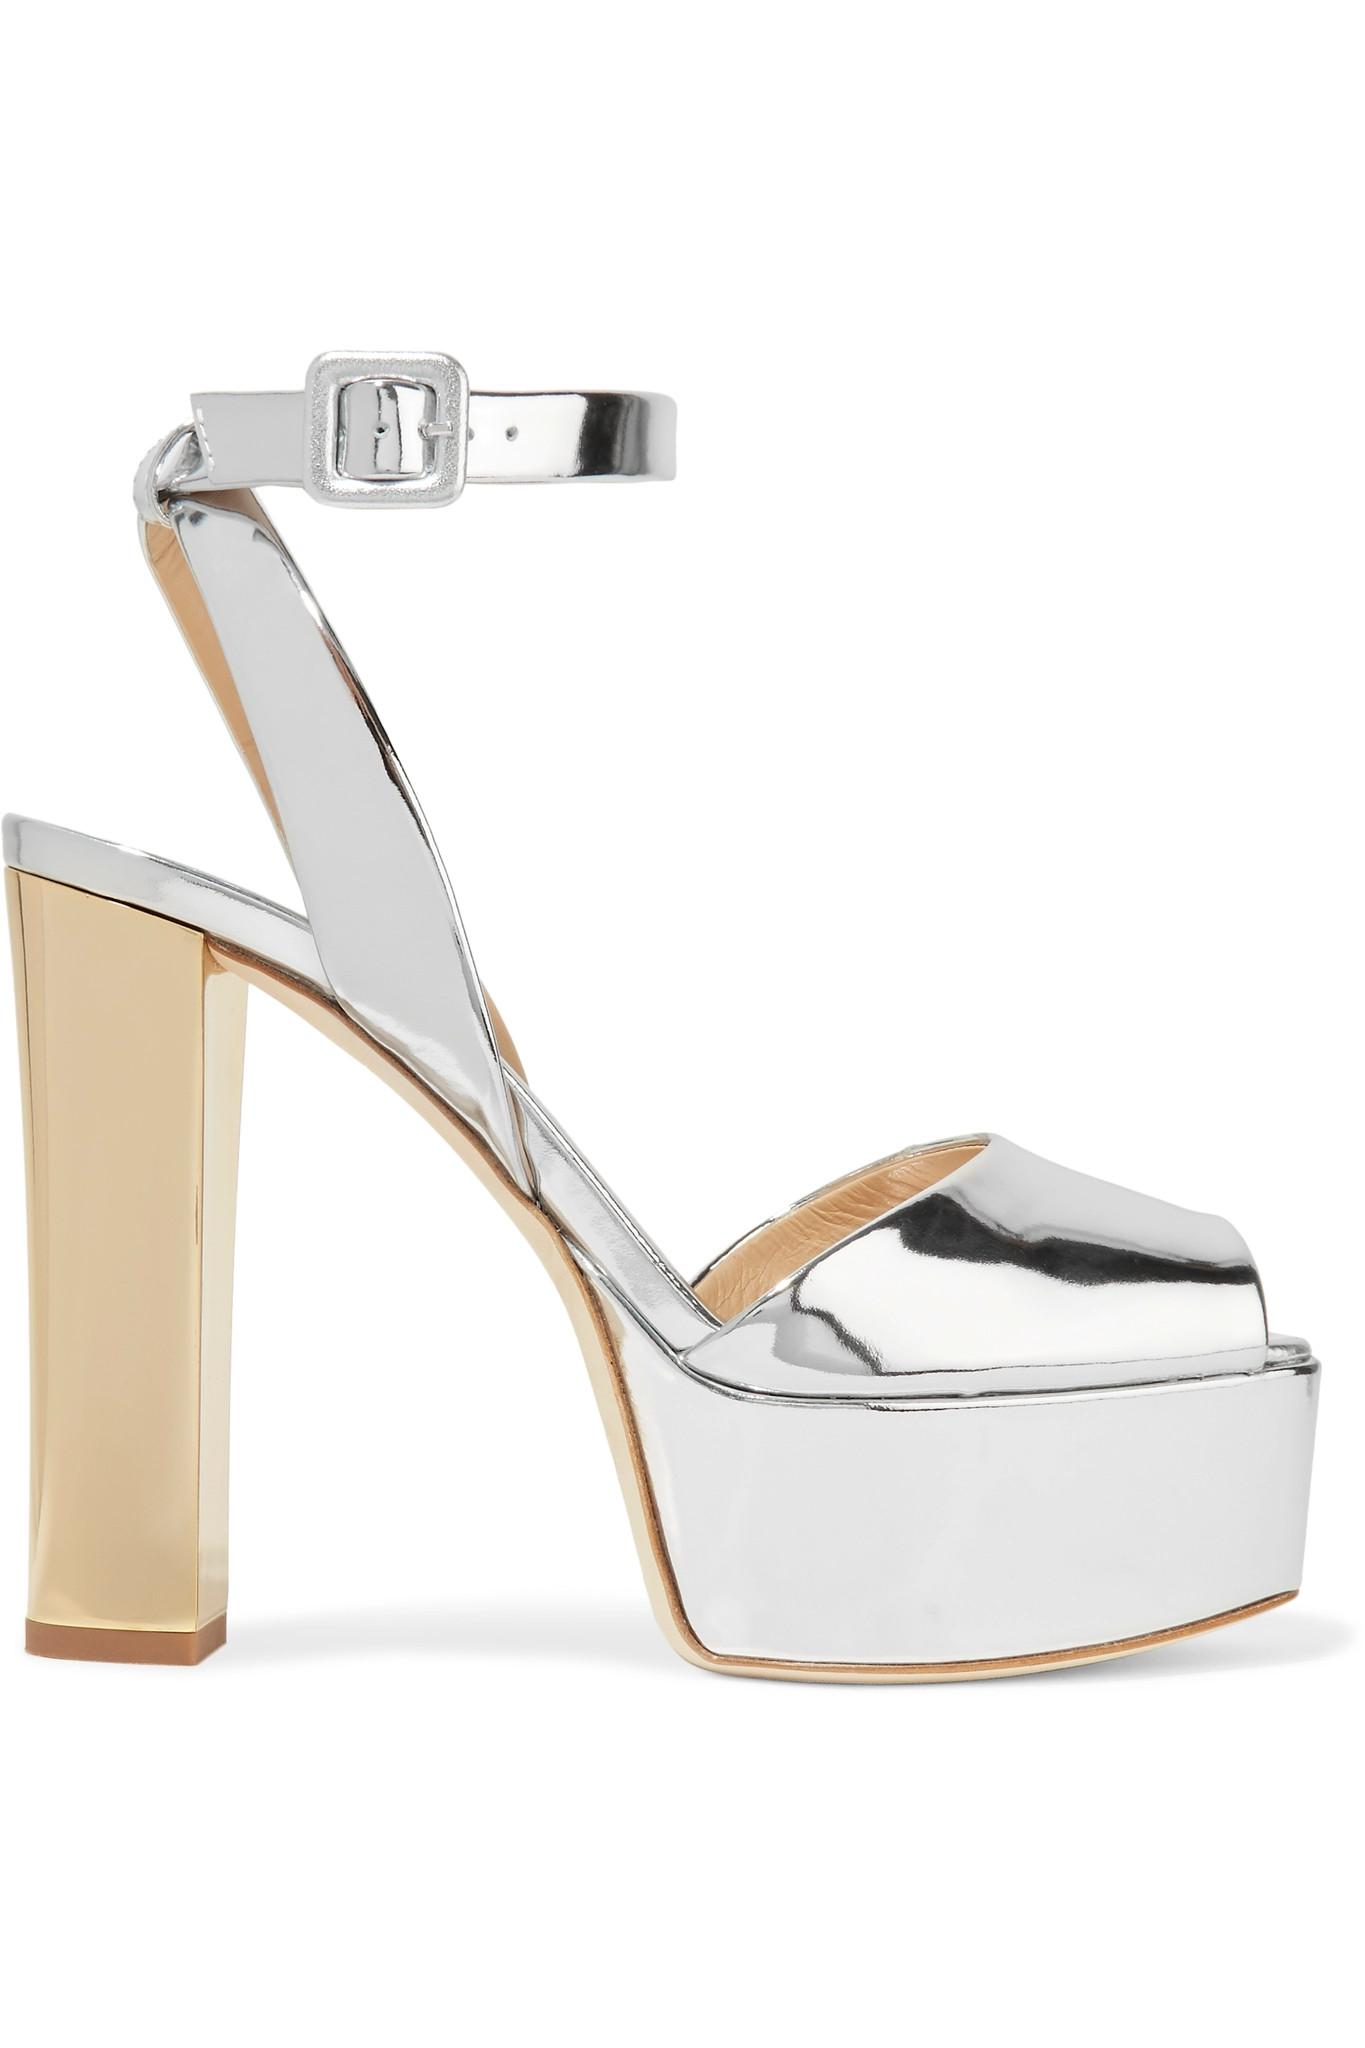 29d191ccb38e Giuseppe Zanotti Mirrored-leather Platform Sandals in Metallic - Lyst